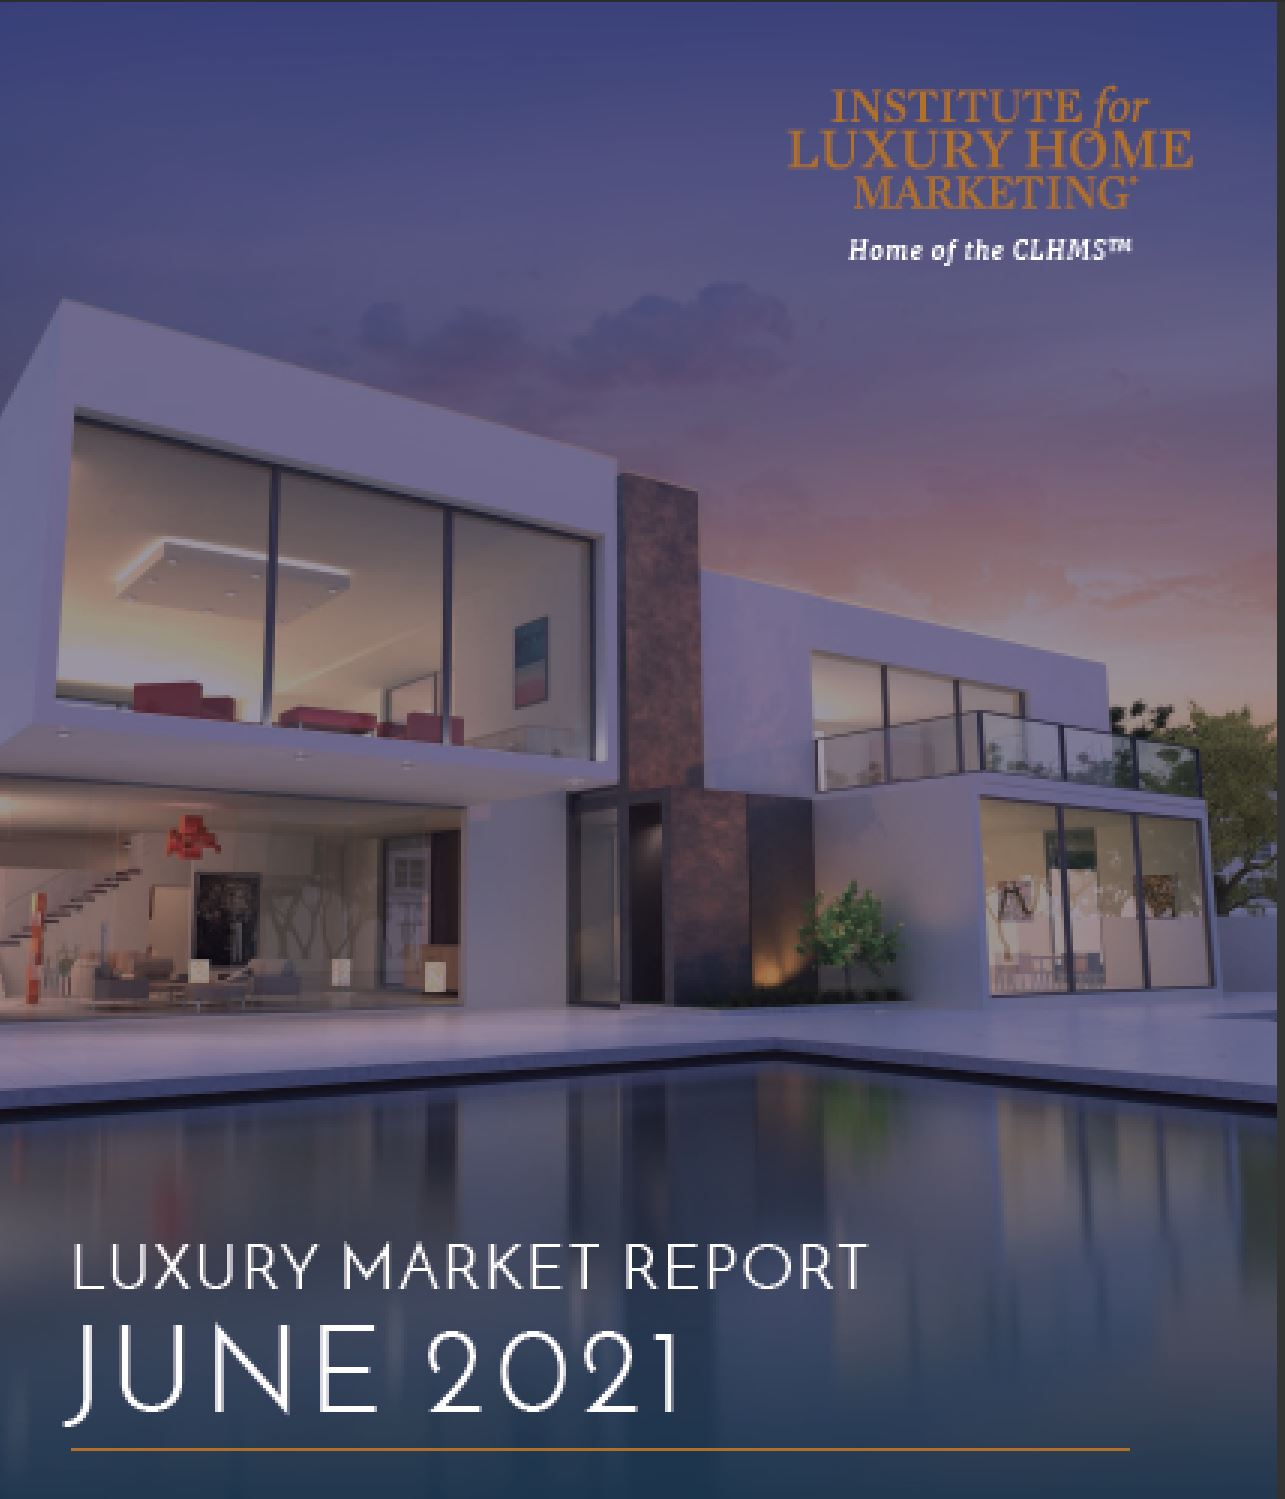 Luxury home market Report for North America front cover June 2021 ILHM Hoey Team 239RealEstateDeals.Com LLC